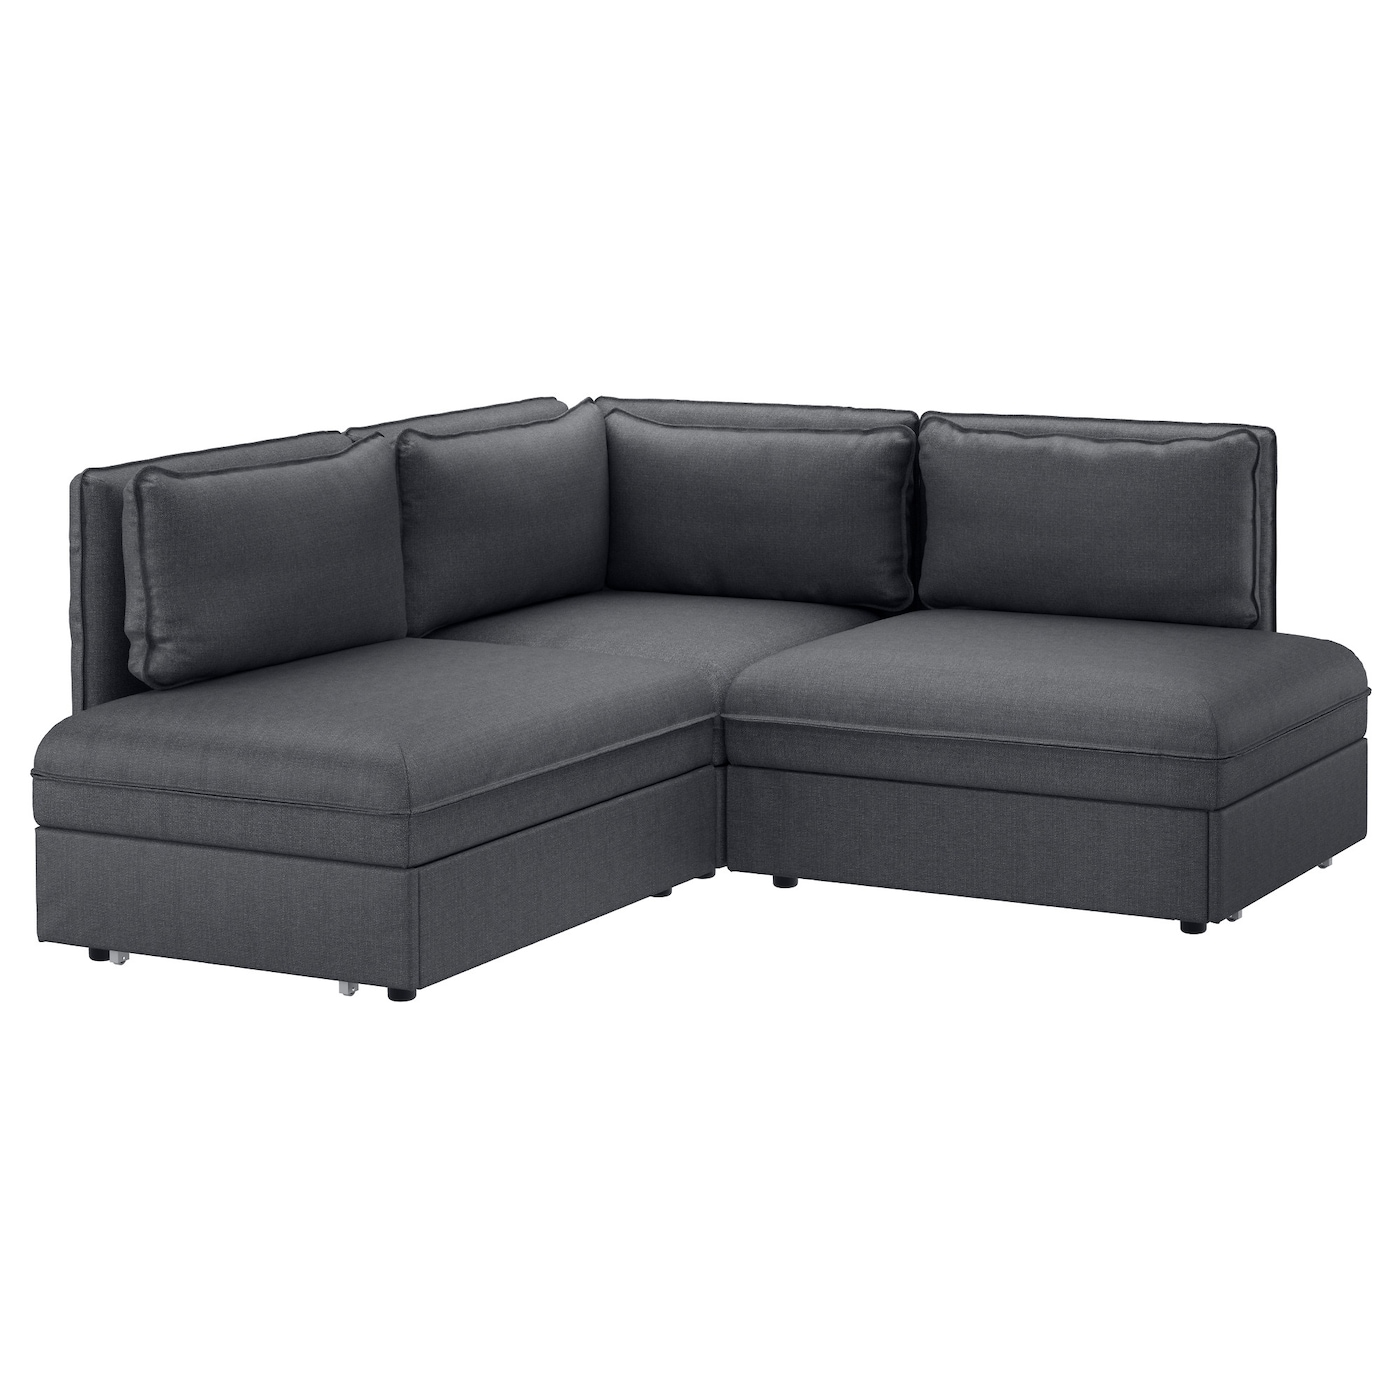 Vallentuna 3 Seat Corner Sofa With Bed Hillared Dark Grey